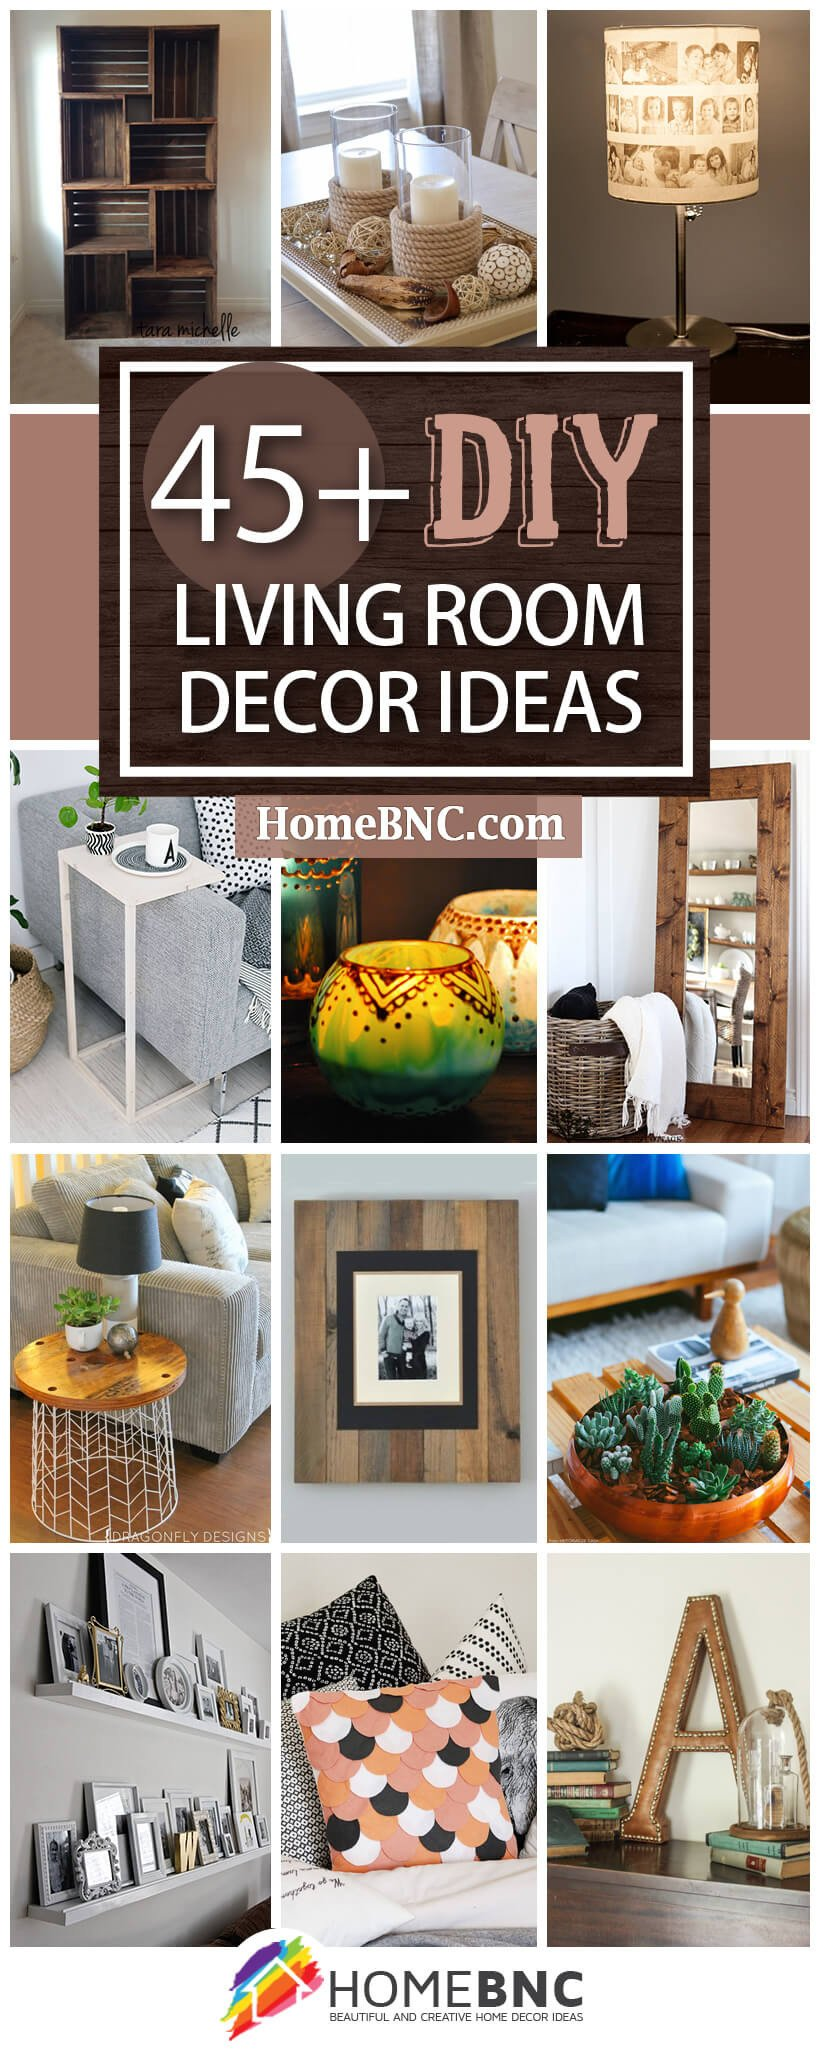 Diy Living Room Decor Ideas Beautiful 45 Best Diy Living Room Decorating Ideas and Designs for 2019